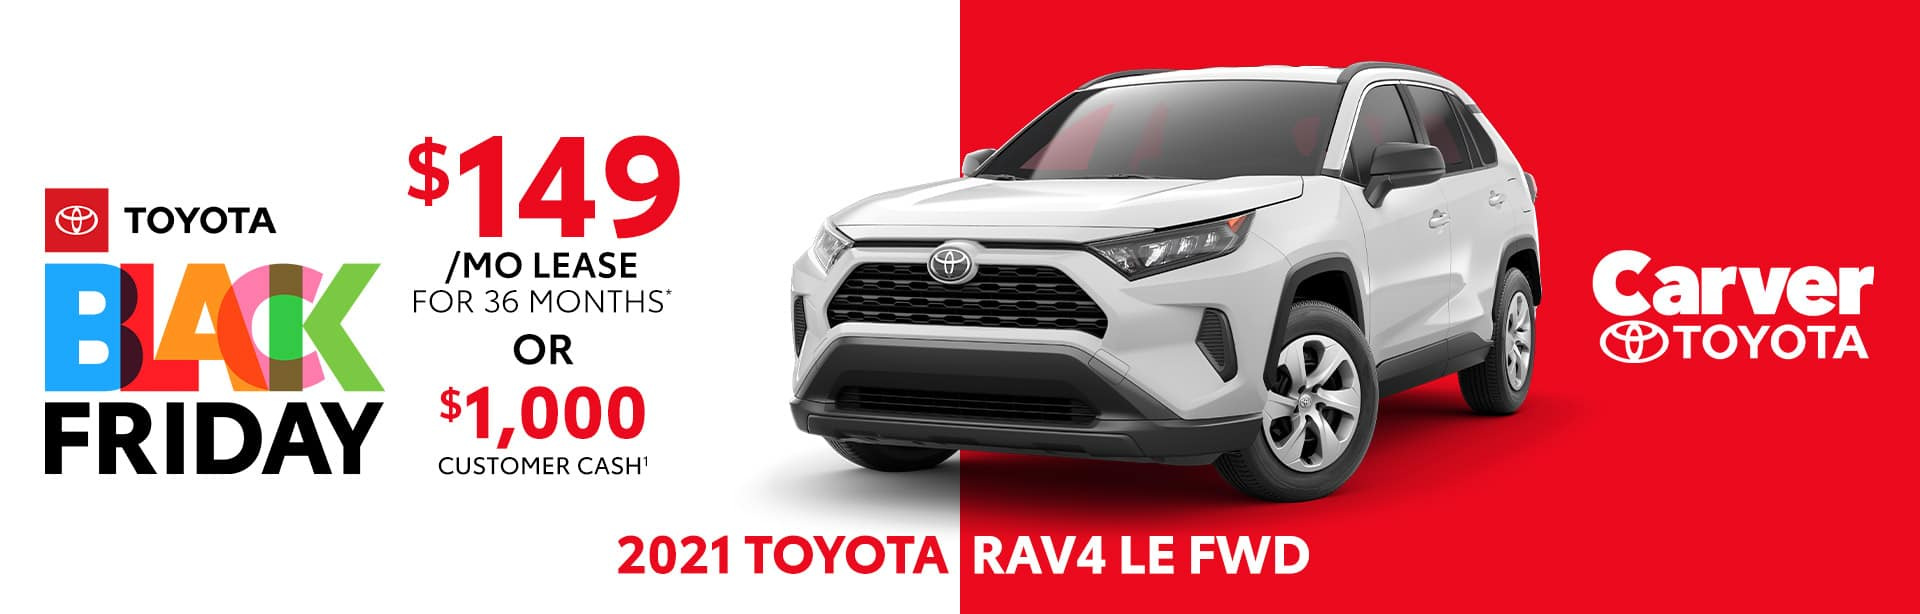 Best lease deal or customer cash back on the all new 2021 Toyota RAV4 LE near Columbus, IN